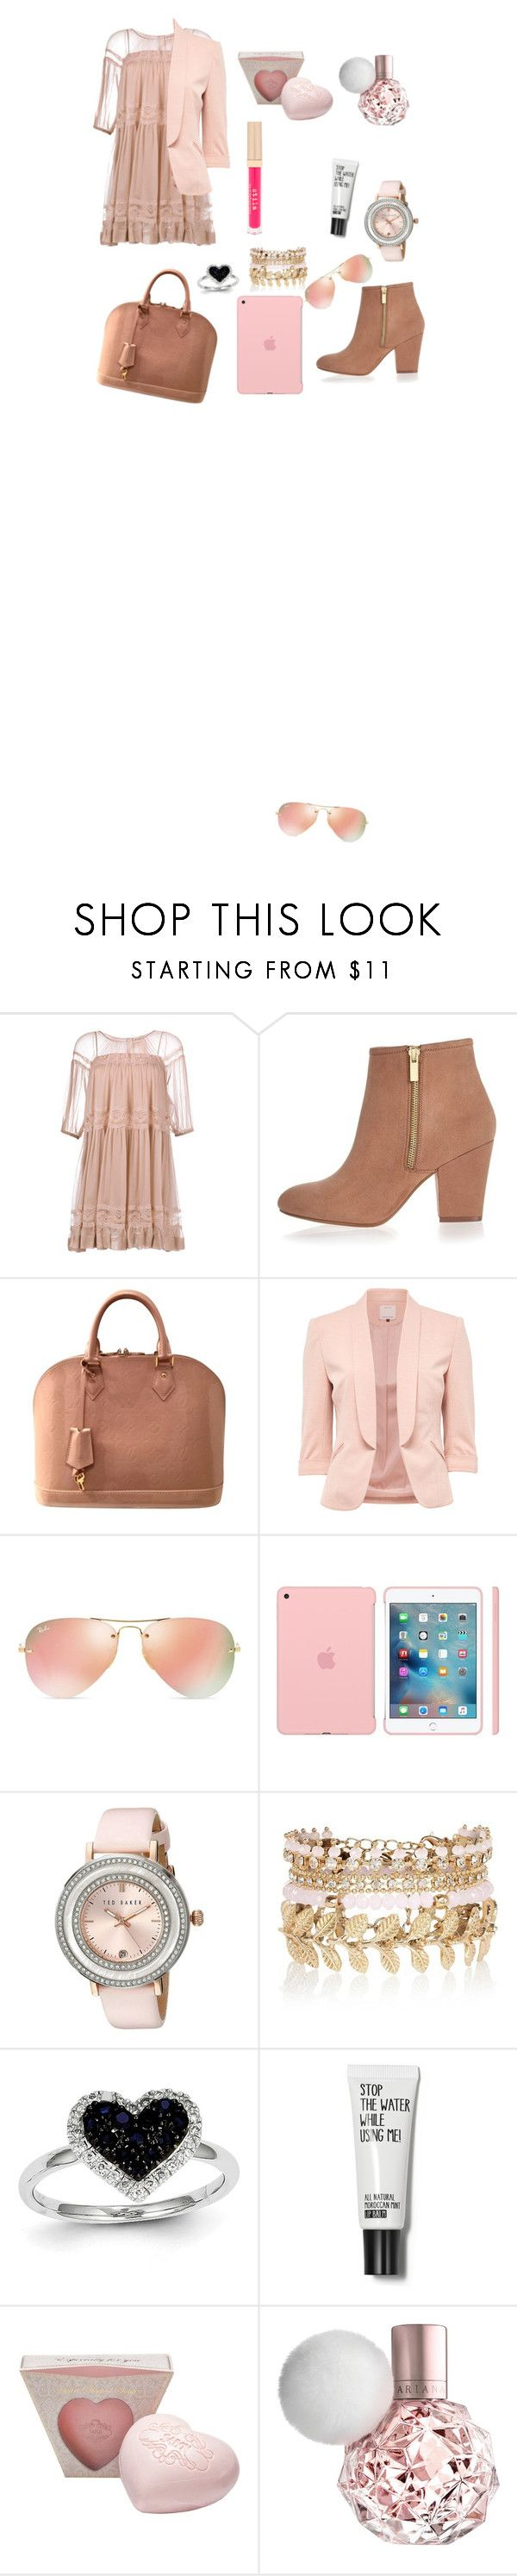 """Pink School Outfit"" by ioanastyle3005 ❤ liked on Polyvore featuring N°21, River Island, Louis Vuitton, Ray-Ban, Ted Baker, Kevin Jewelers and Stila"